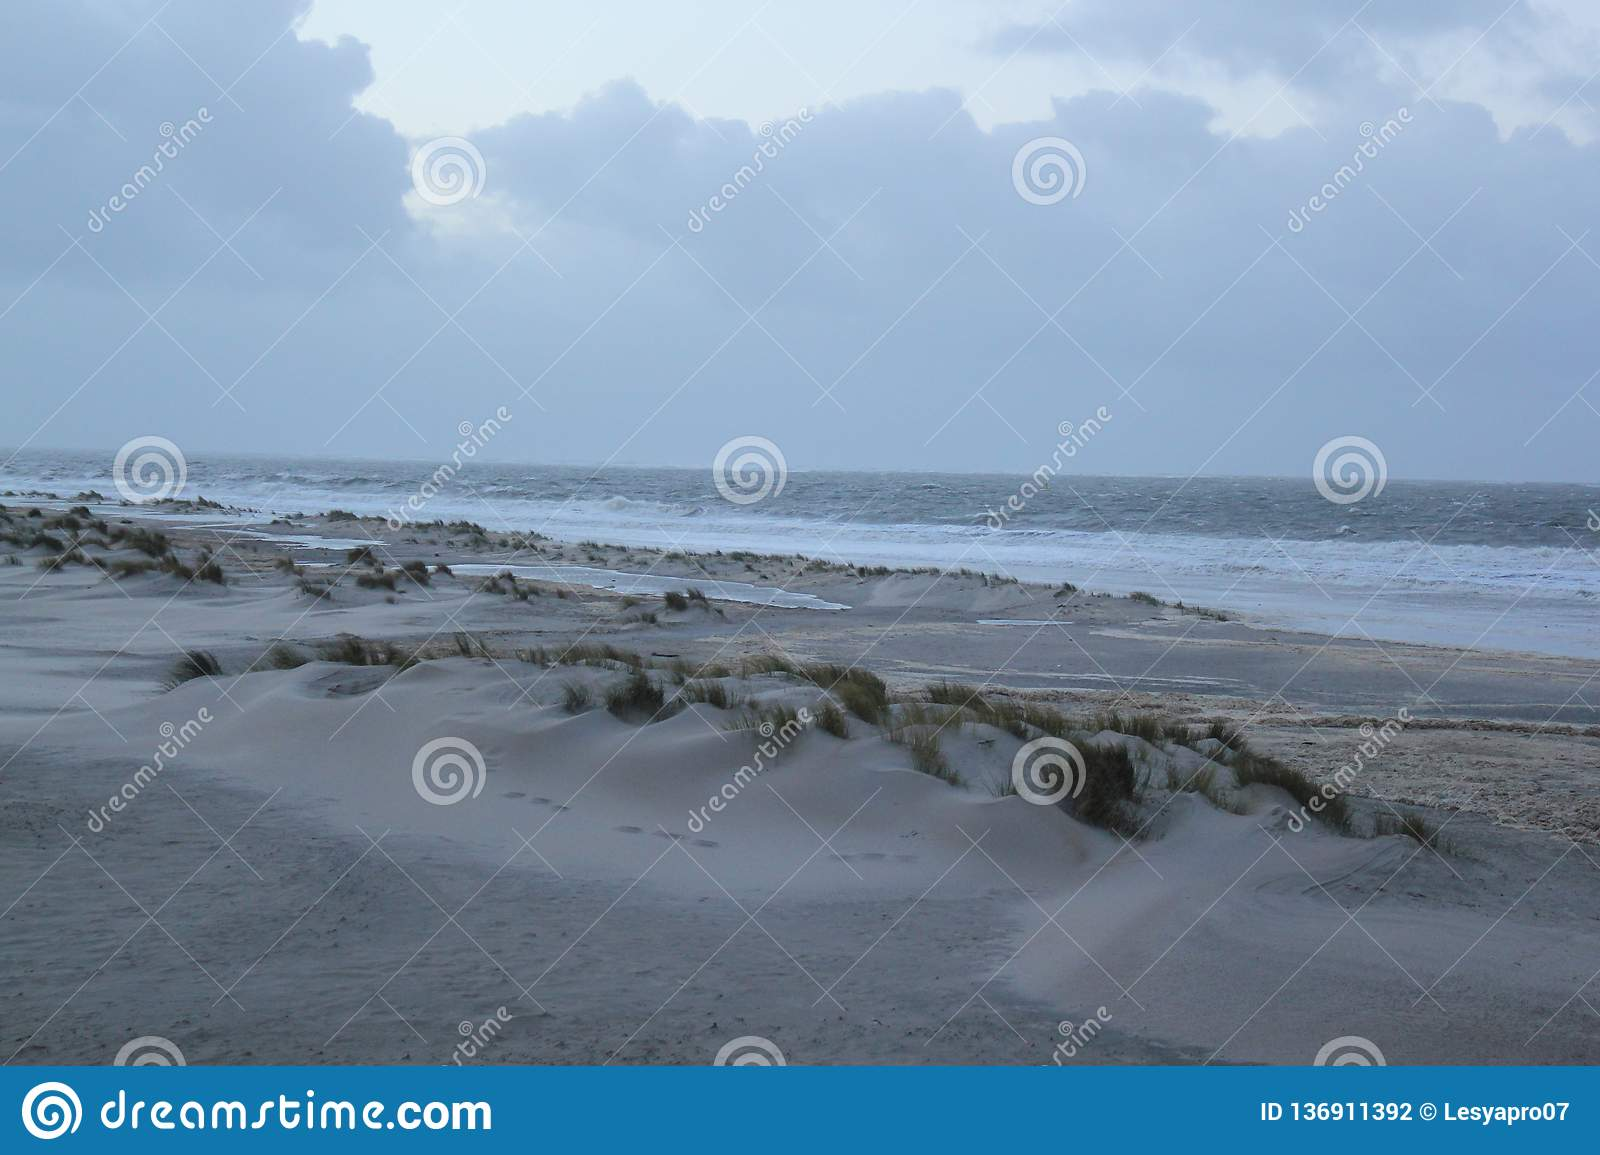 Dunes with grass at the coast of the North Sea in Zeeland in the Netherlands